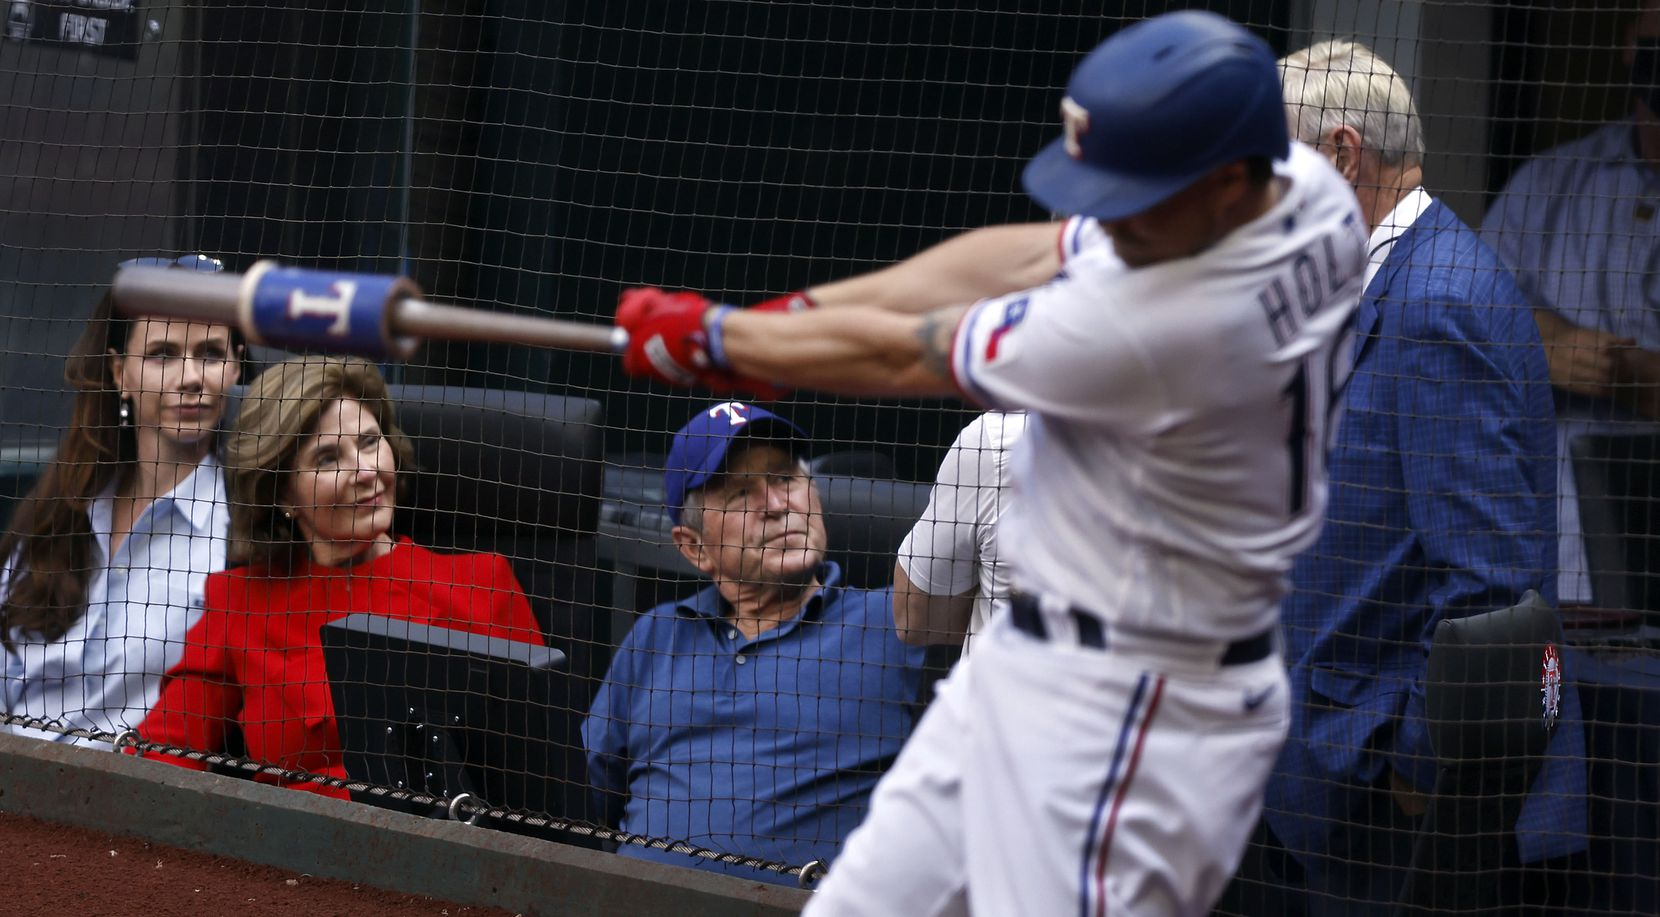 Former President George W. Bush (center) visits with Rangers co-owner Ray Davis as he sits in a field level suite with wife Laura Bush and daughter Barbara Bush during Opening Day at Globe Life Field in Arlington, Monday, April 5, 2021. Biggio was at the game to see his son, Toronto Blue Jays Cavan Biggio. The Texas Rangers were facing the Toronto Blue Jays in their home opener. (Tom Fox/The Dallas Morning News)